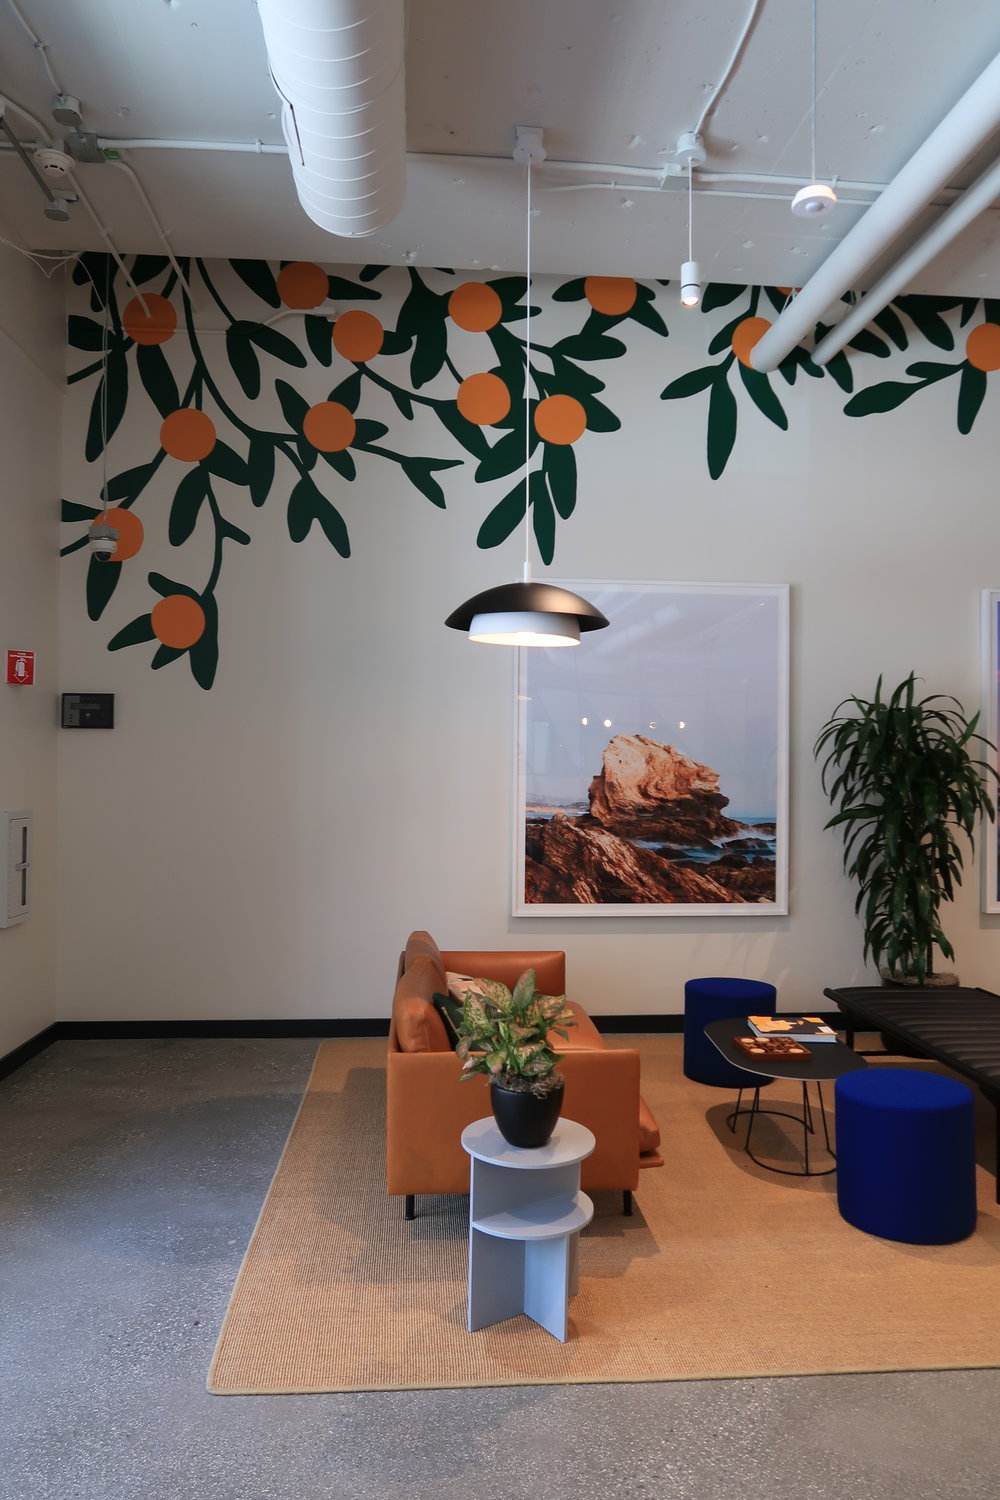 Office-commercial-mural-san-francisco-wework-oranges-wall-and-wall-mural-company_004.jpeg